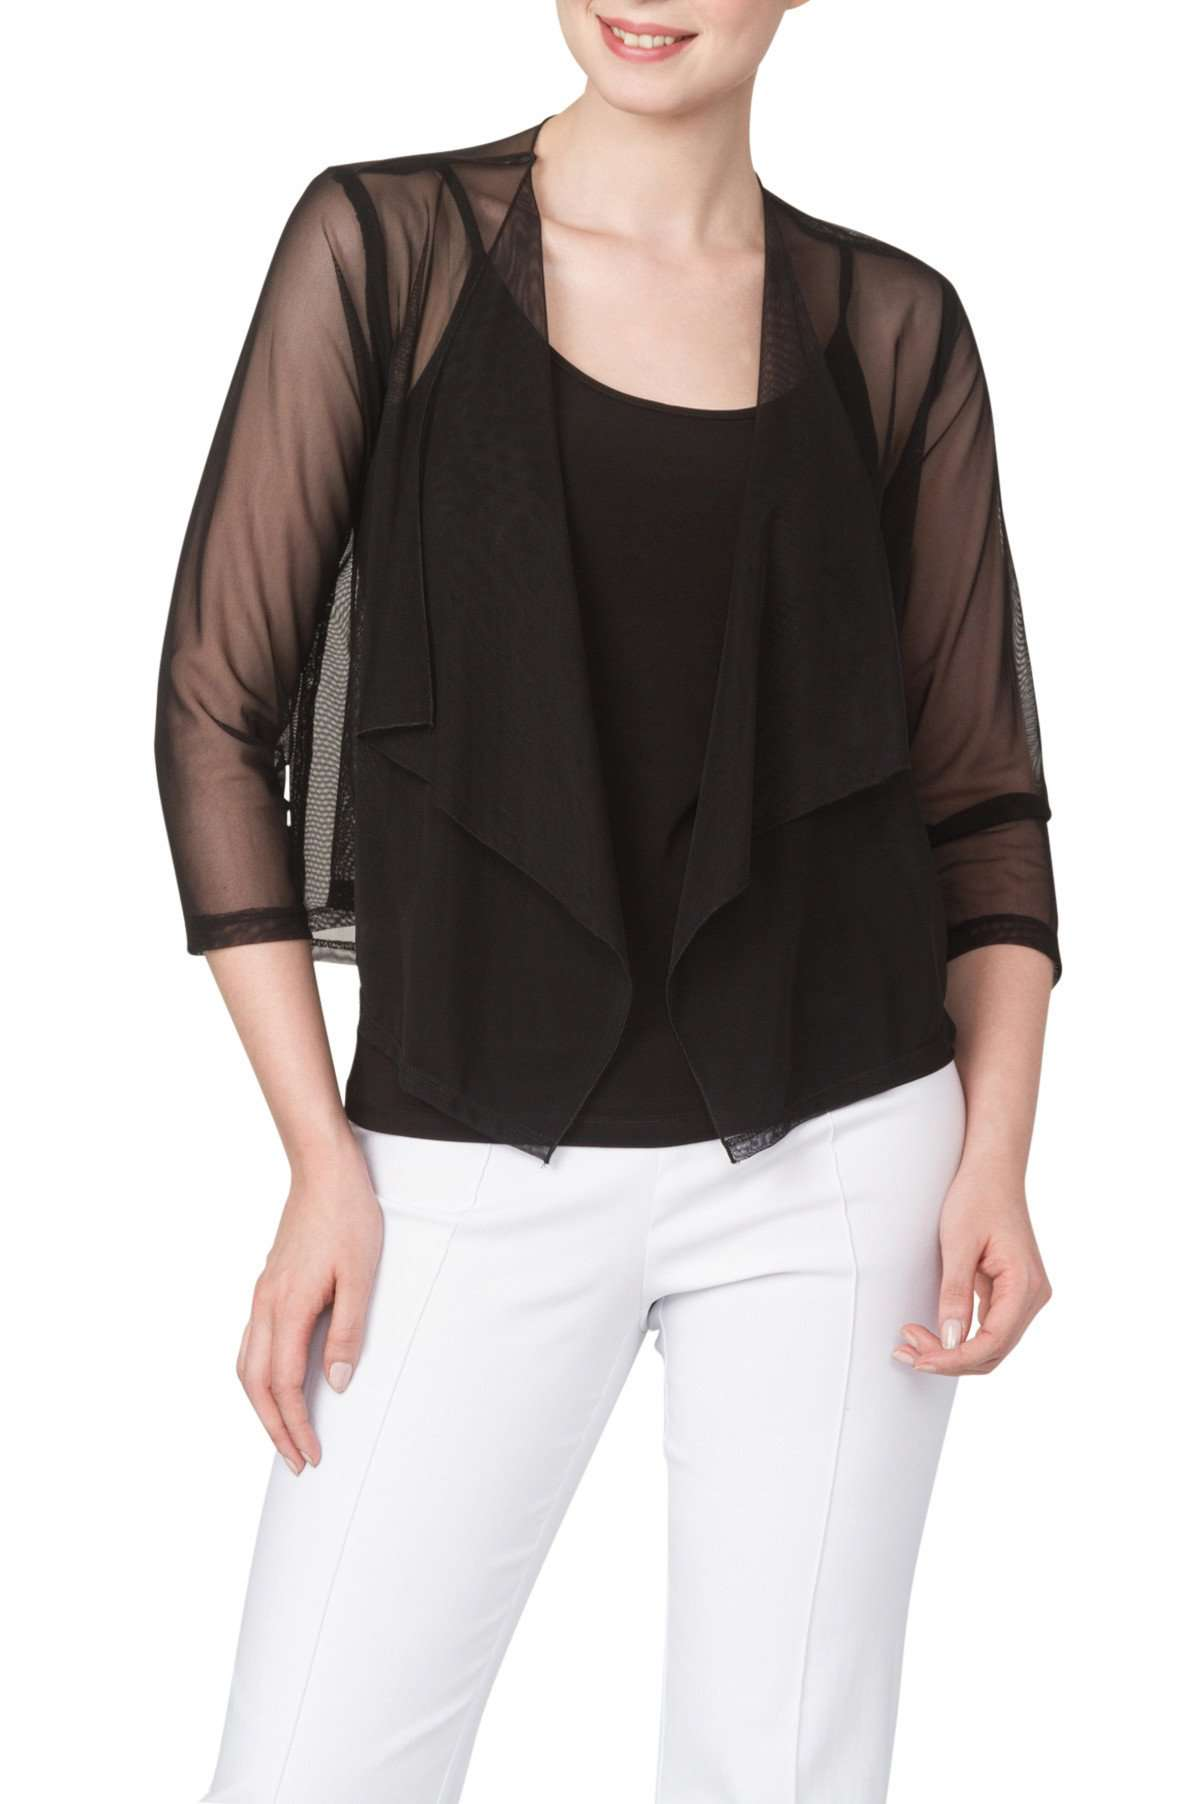 Jacket Bolero Black Mesh 50% OFF-Made in Canada - Yvonne Marie